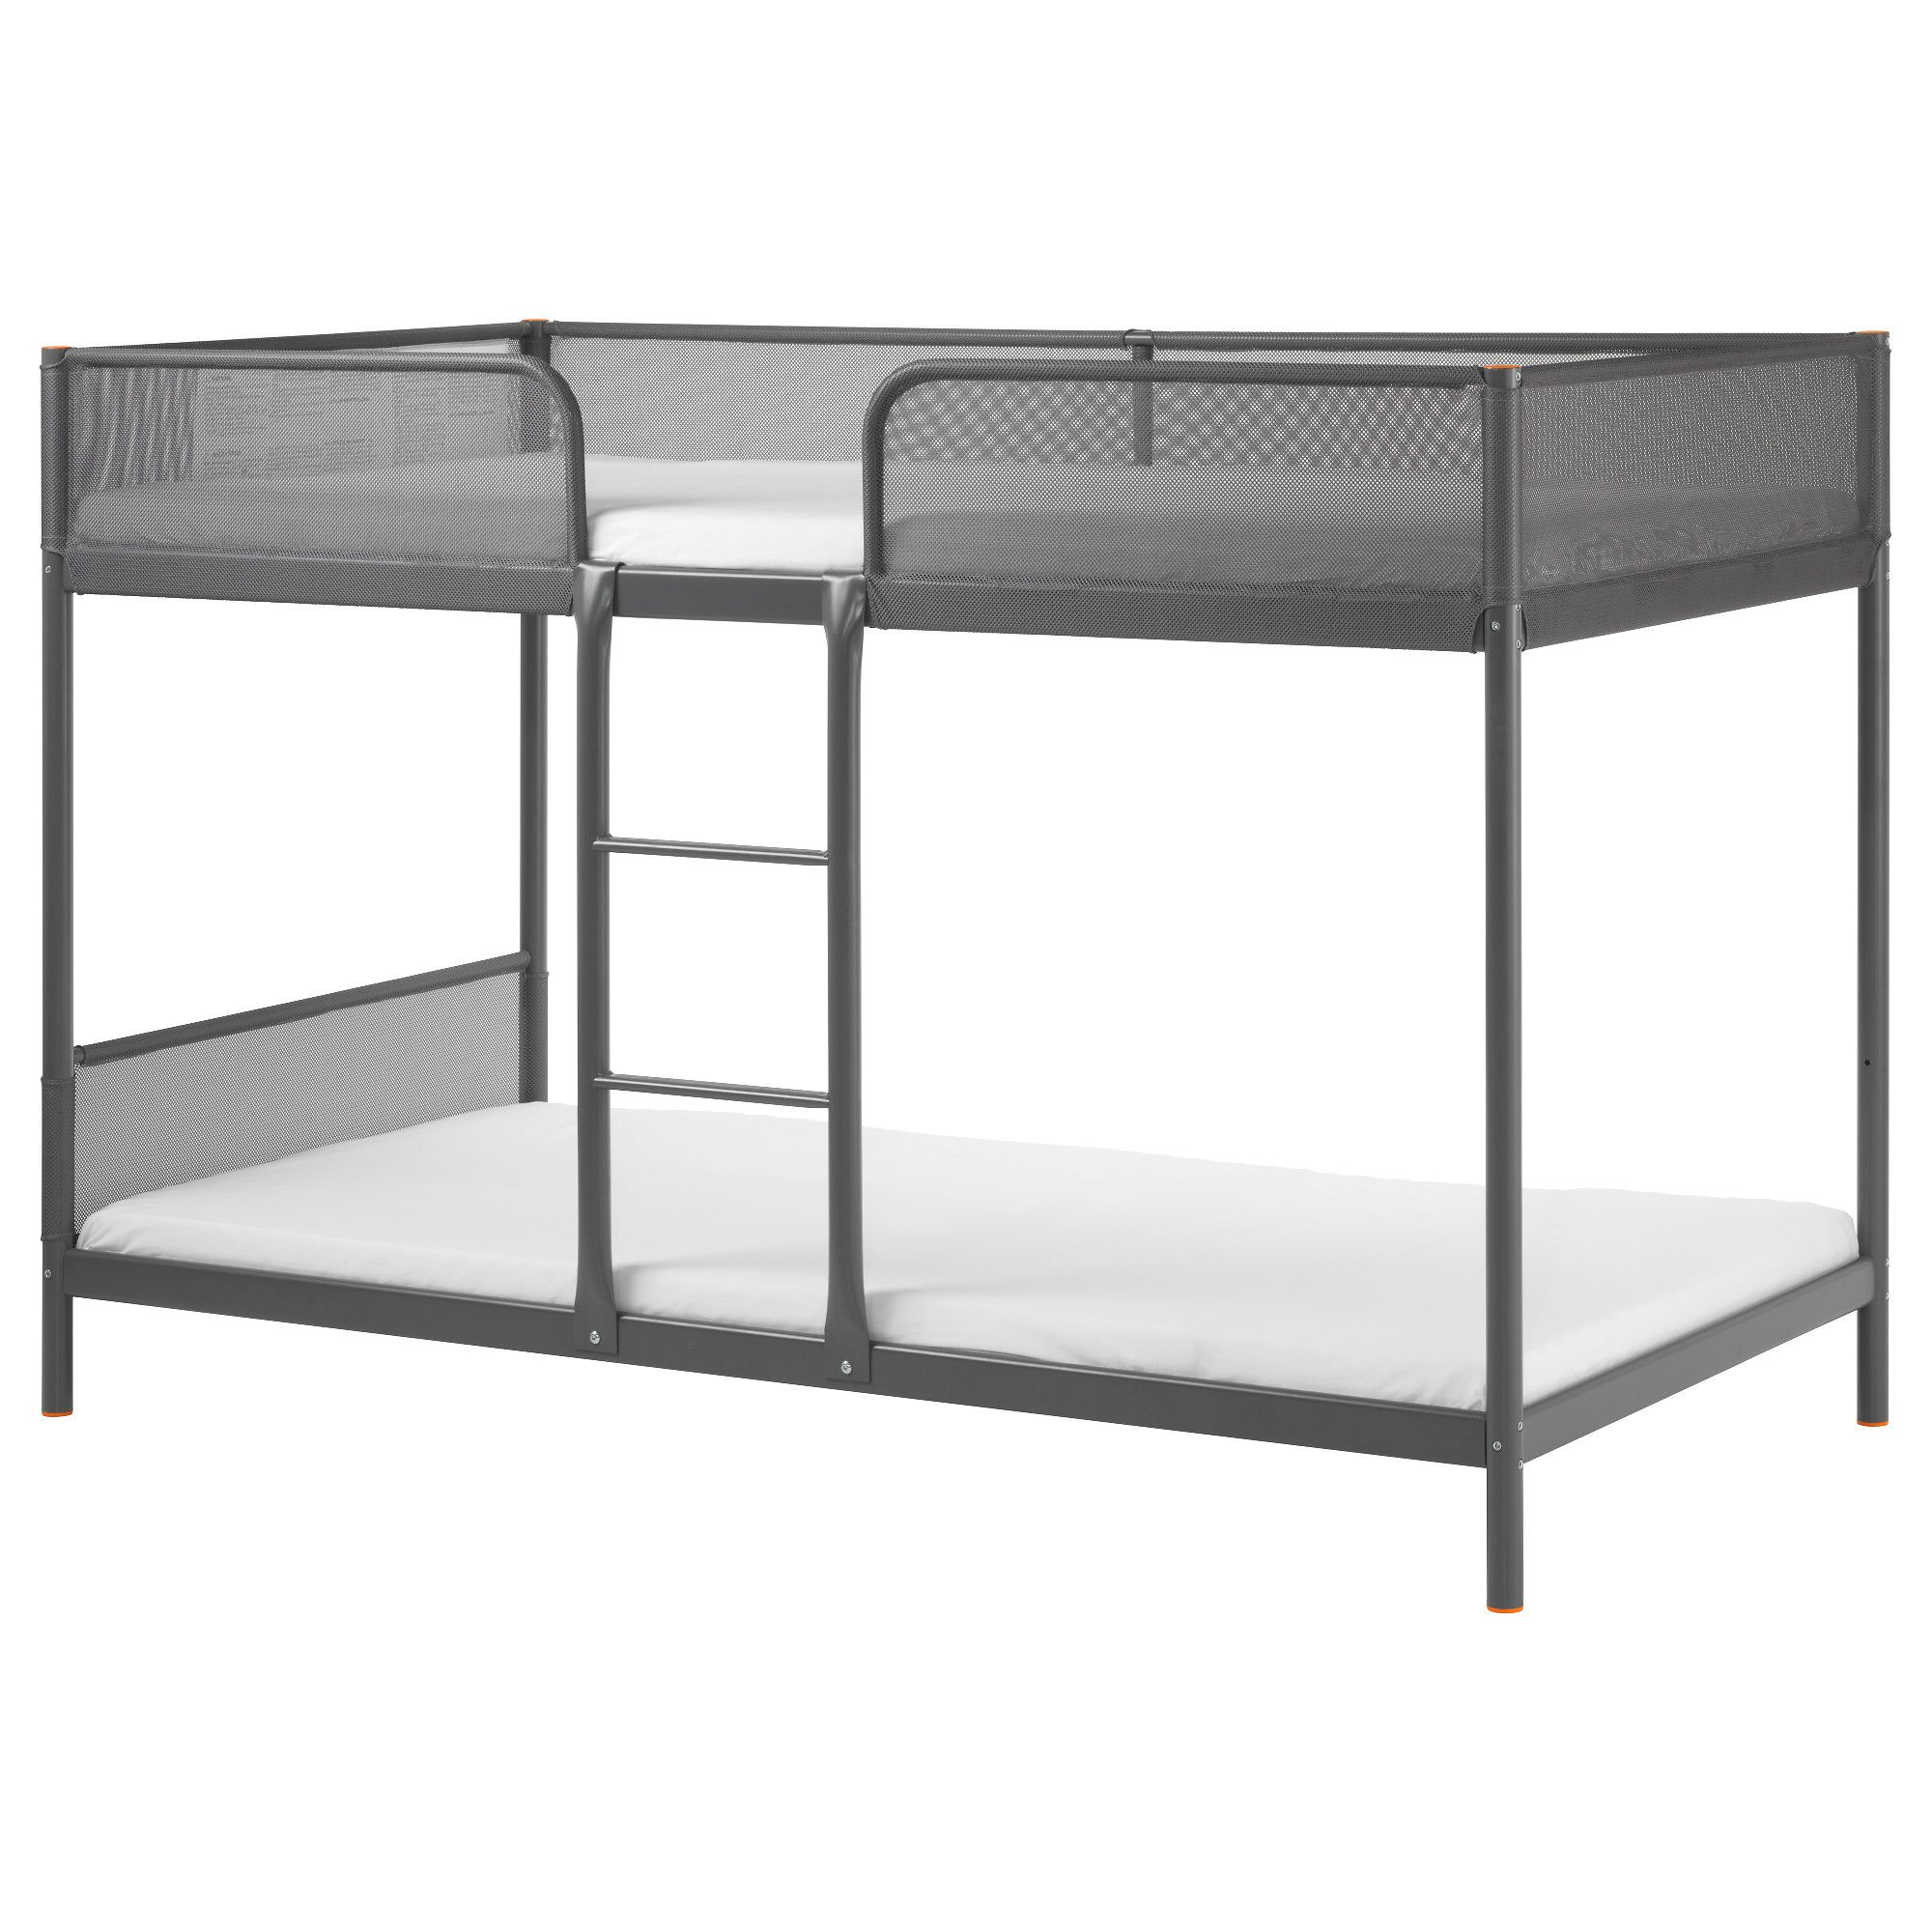 Ikea eckschrank kleiderschrank ikea twin size bed for - Ikea Tuffing Bunk Bed Frame A Good Solution Where Space Is Limited